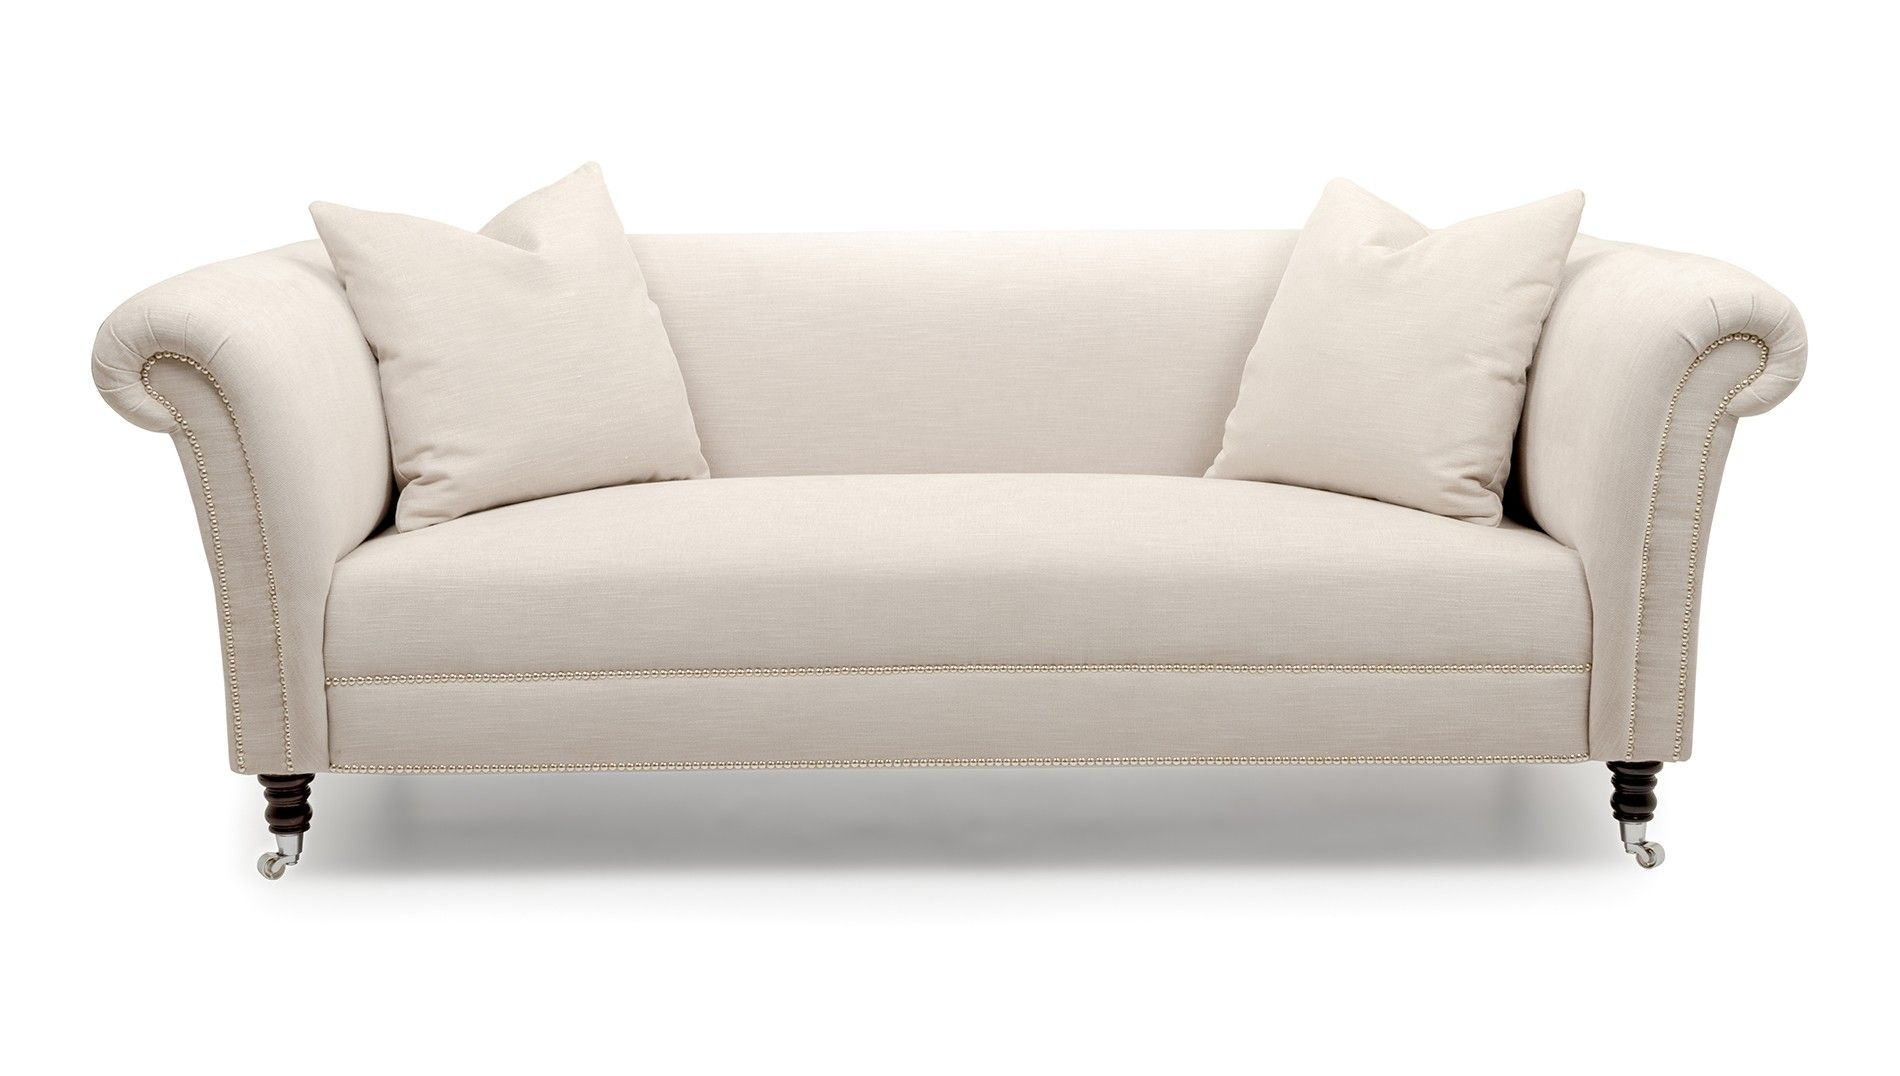 Take a look at the Blair Sofa at LuxDeco